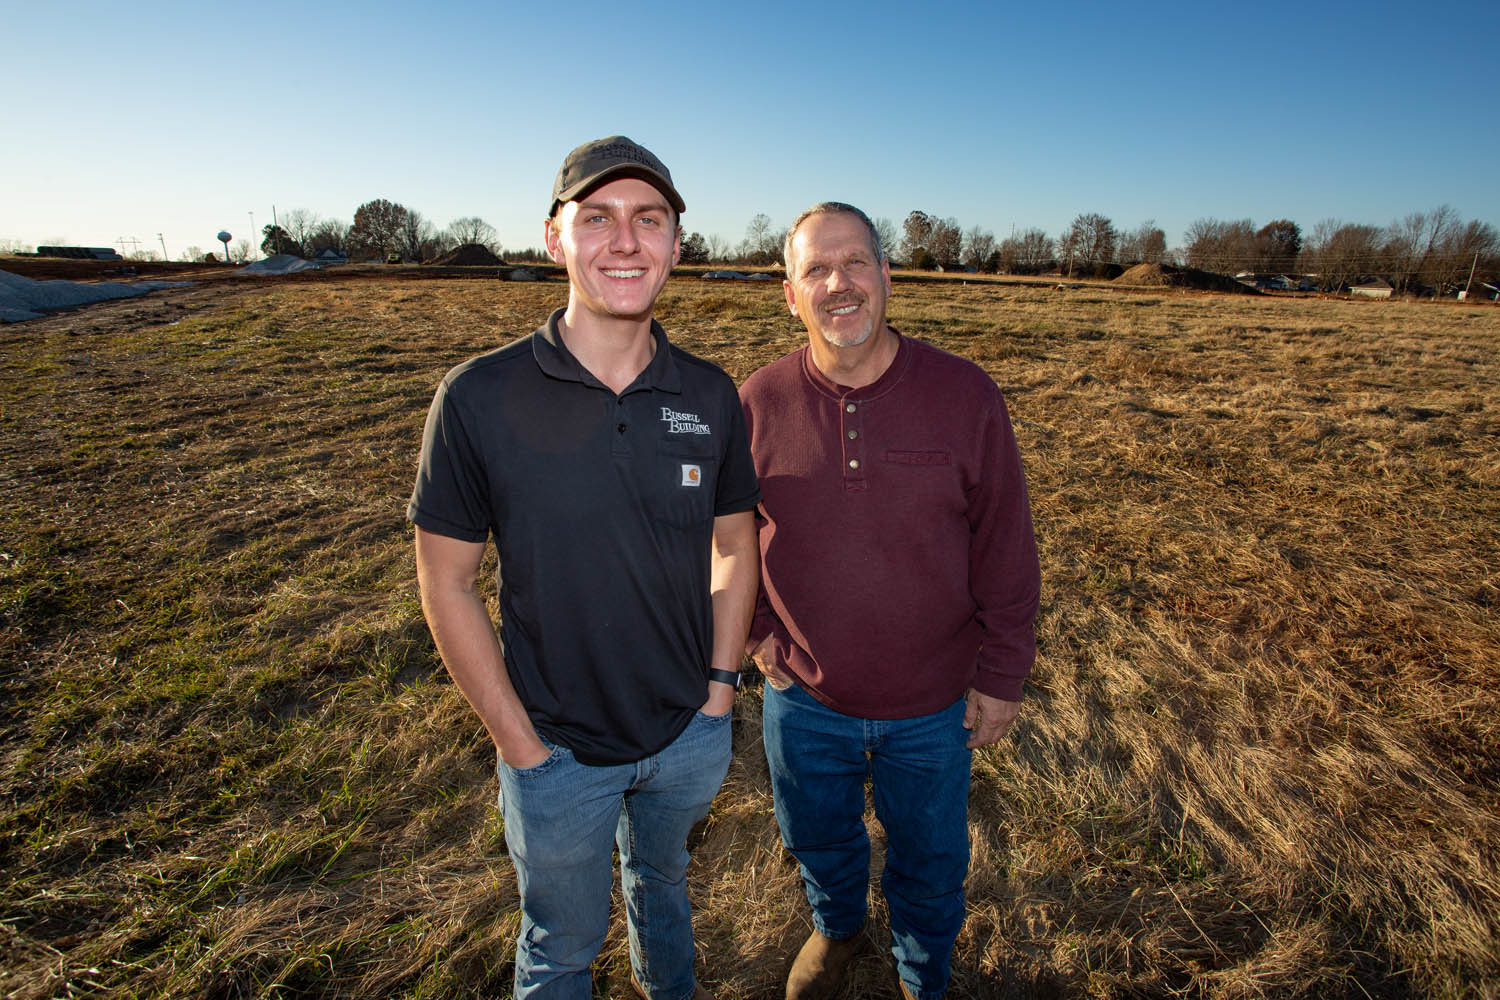 MEETING THE DEMAND: Bussell Building, led by Tyler, left, and Kenny Bussell, is developing six subdivisions, including a new one on 200 acres in Battlefield.